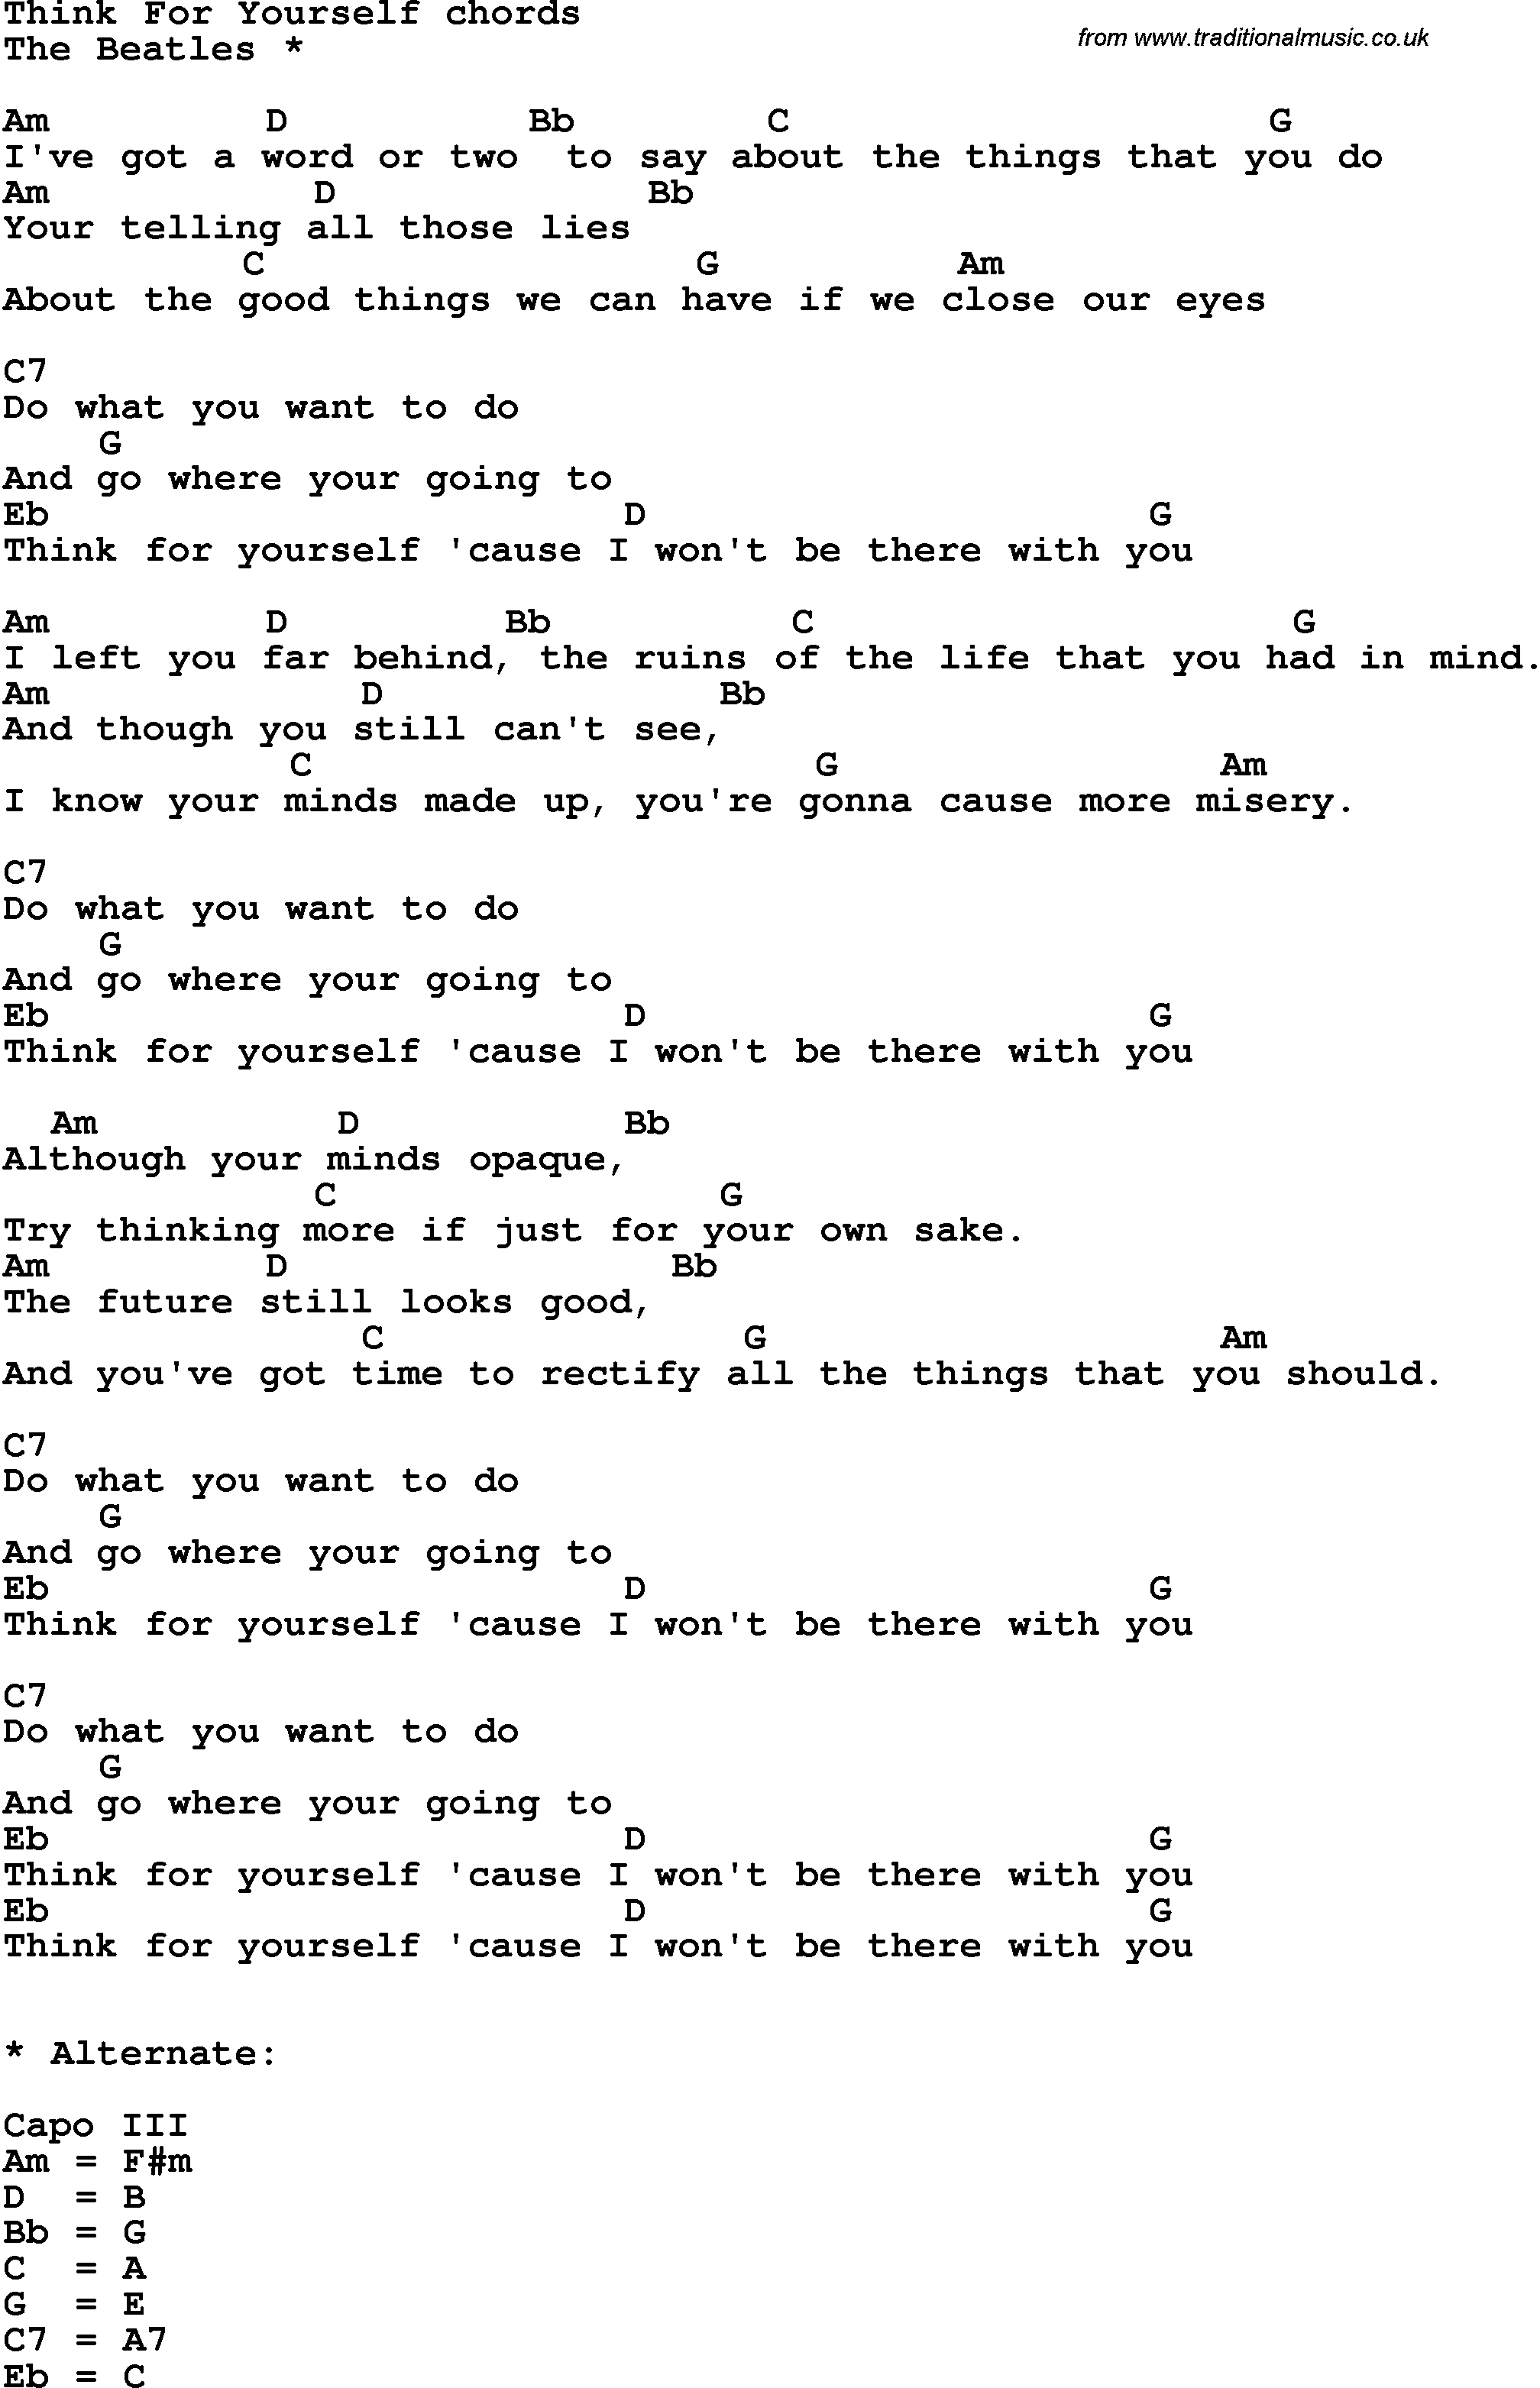 Song Lyrics With Guitar Chords For Think For Yourself